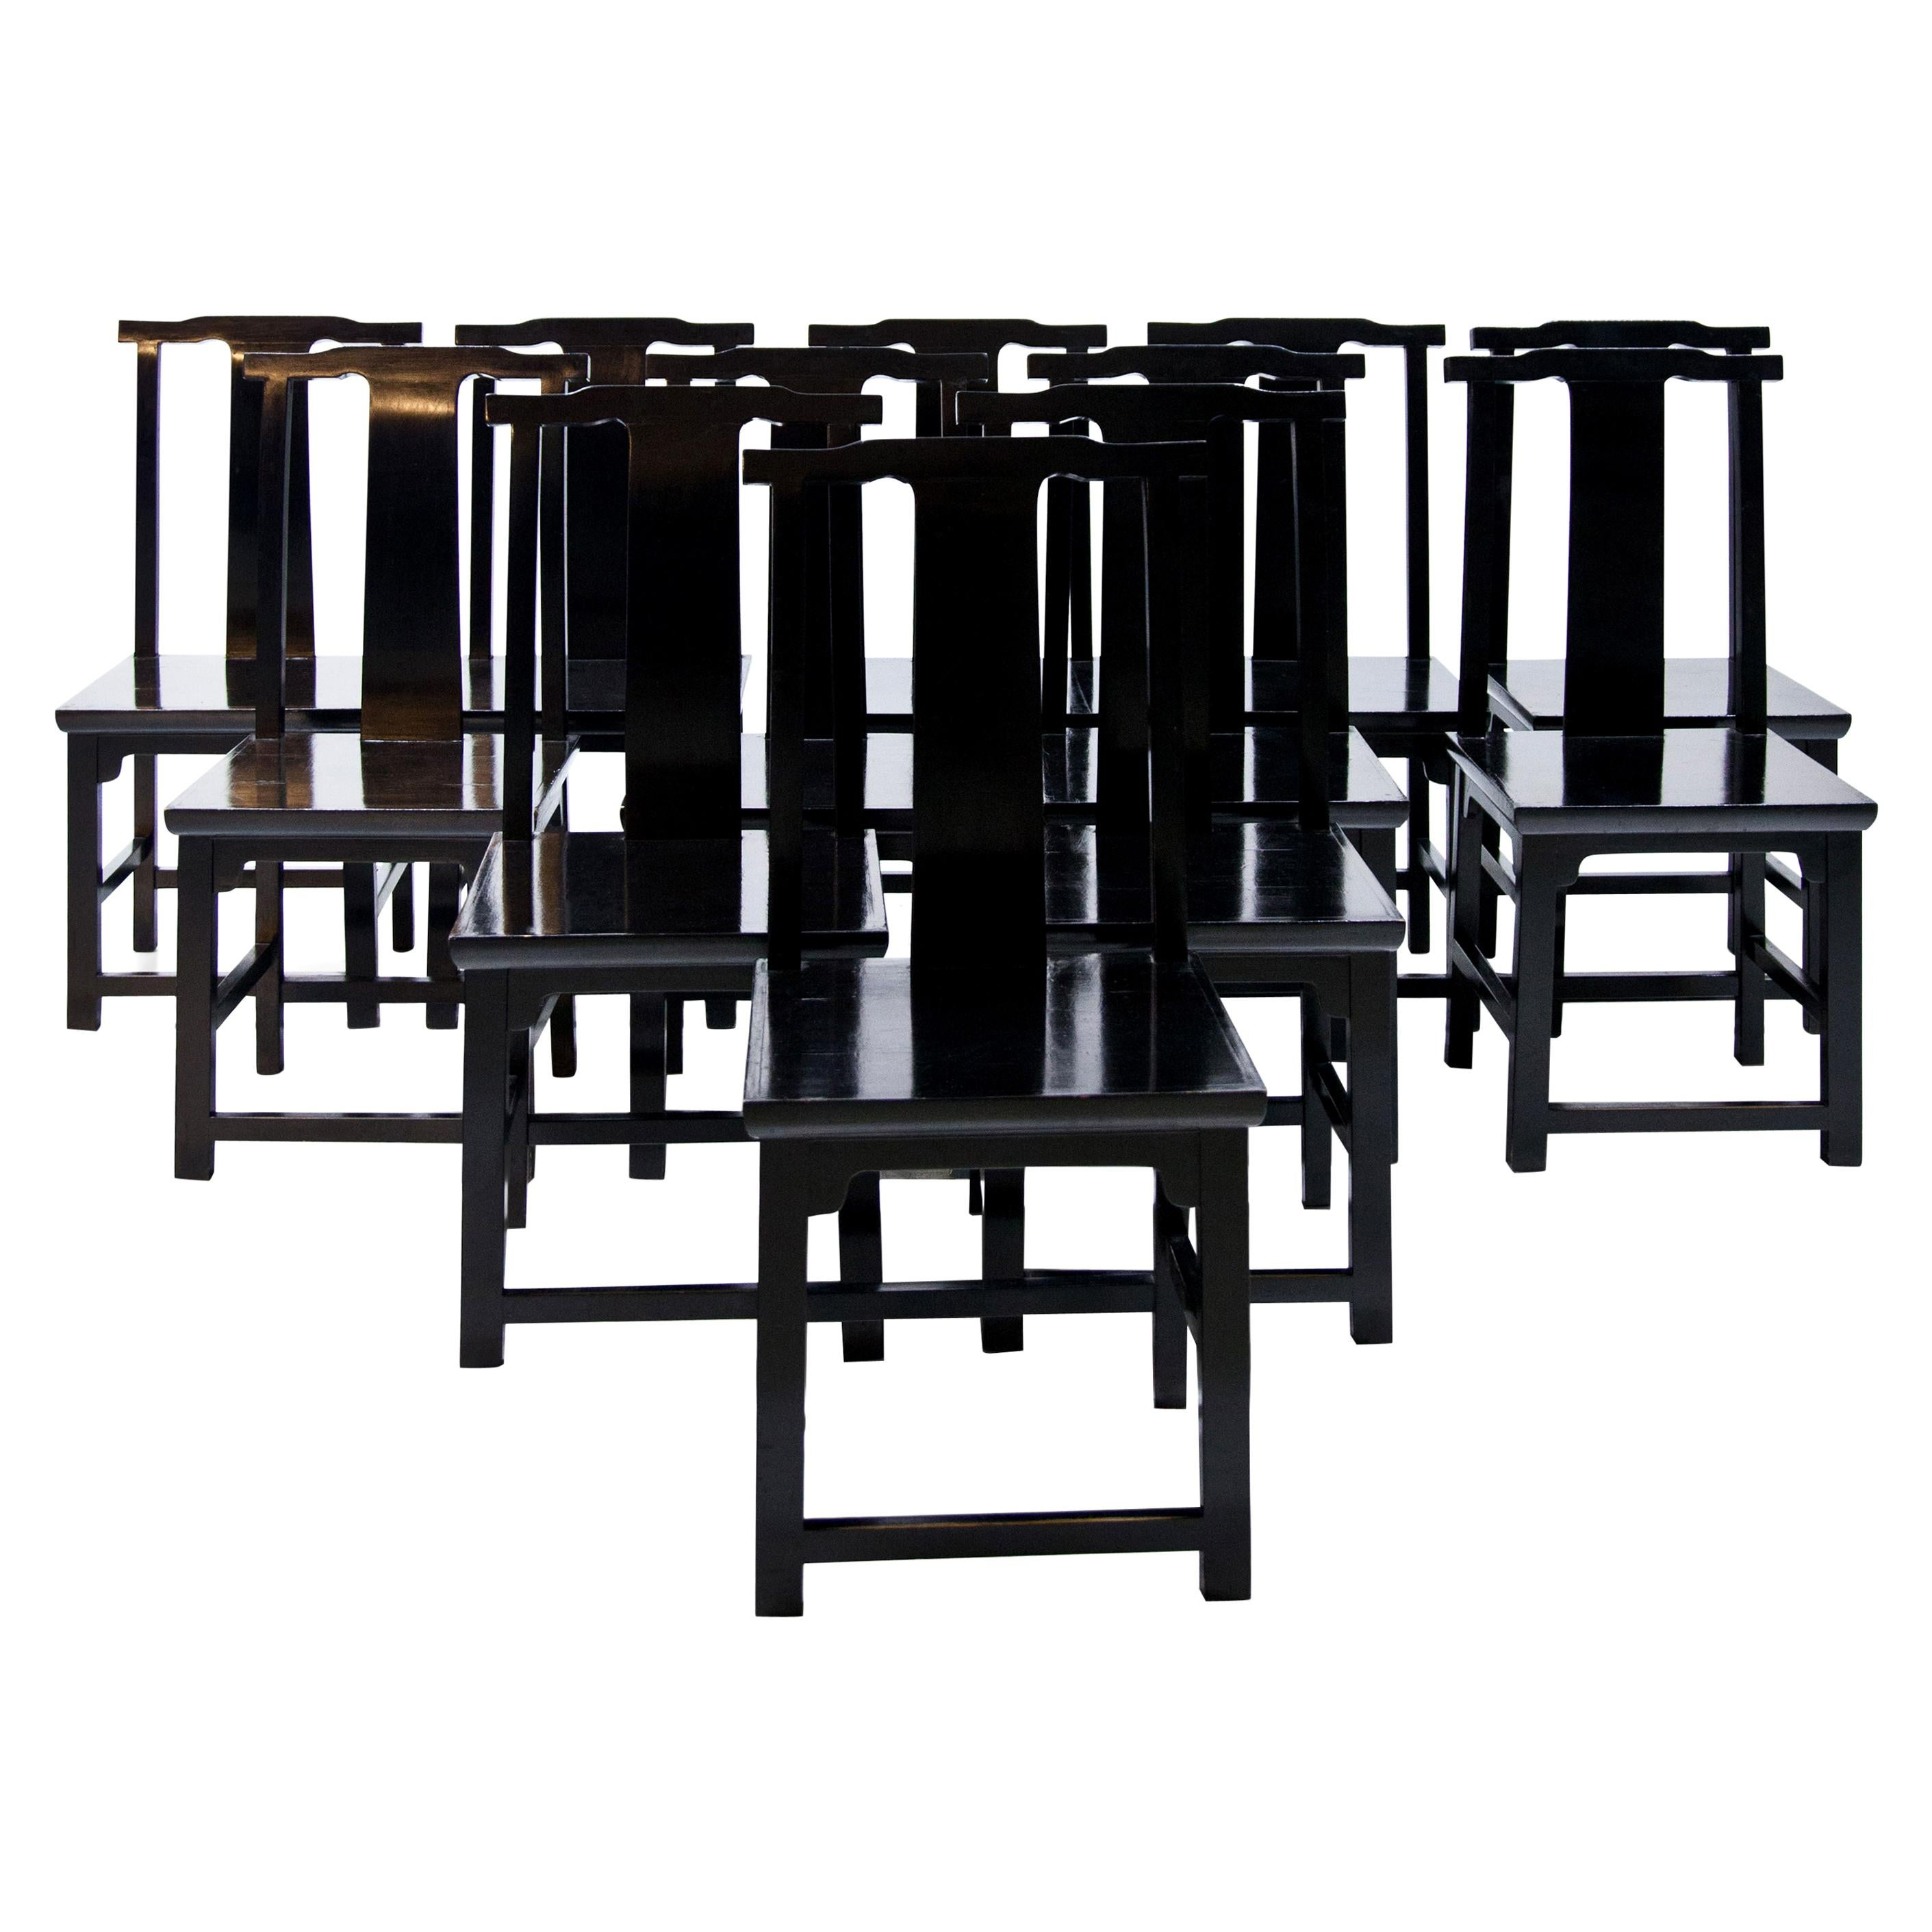 Set of 12 Black Lacquered Japanese-Style Dining Room Chairs, Italy, 20th Century